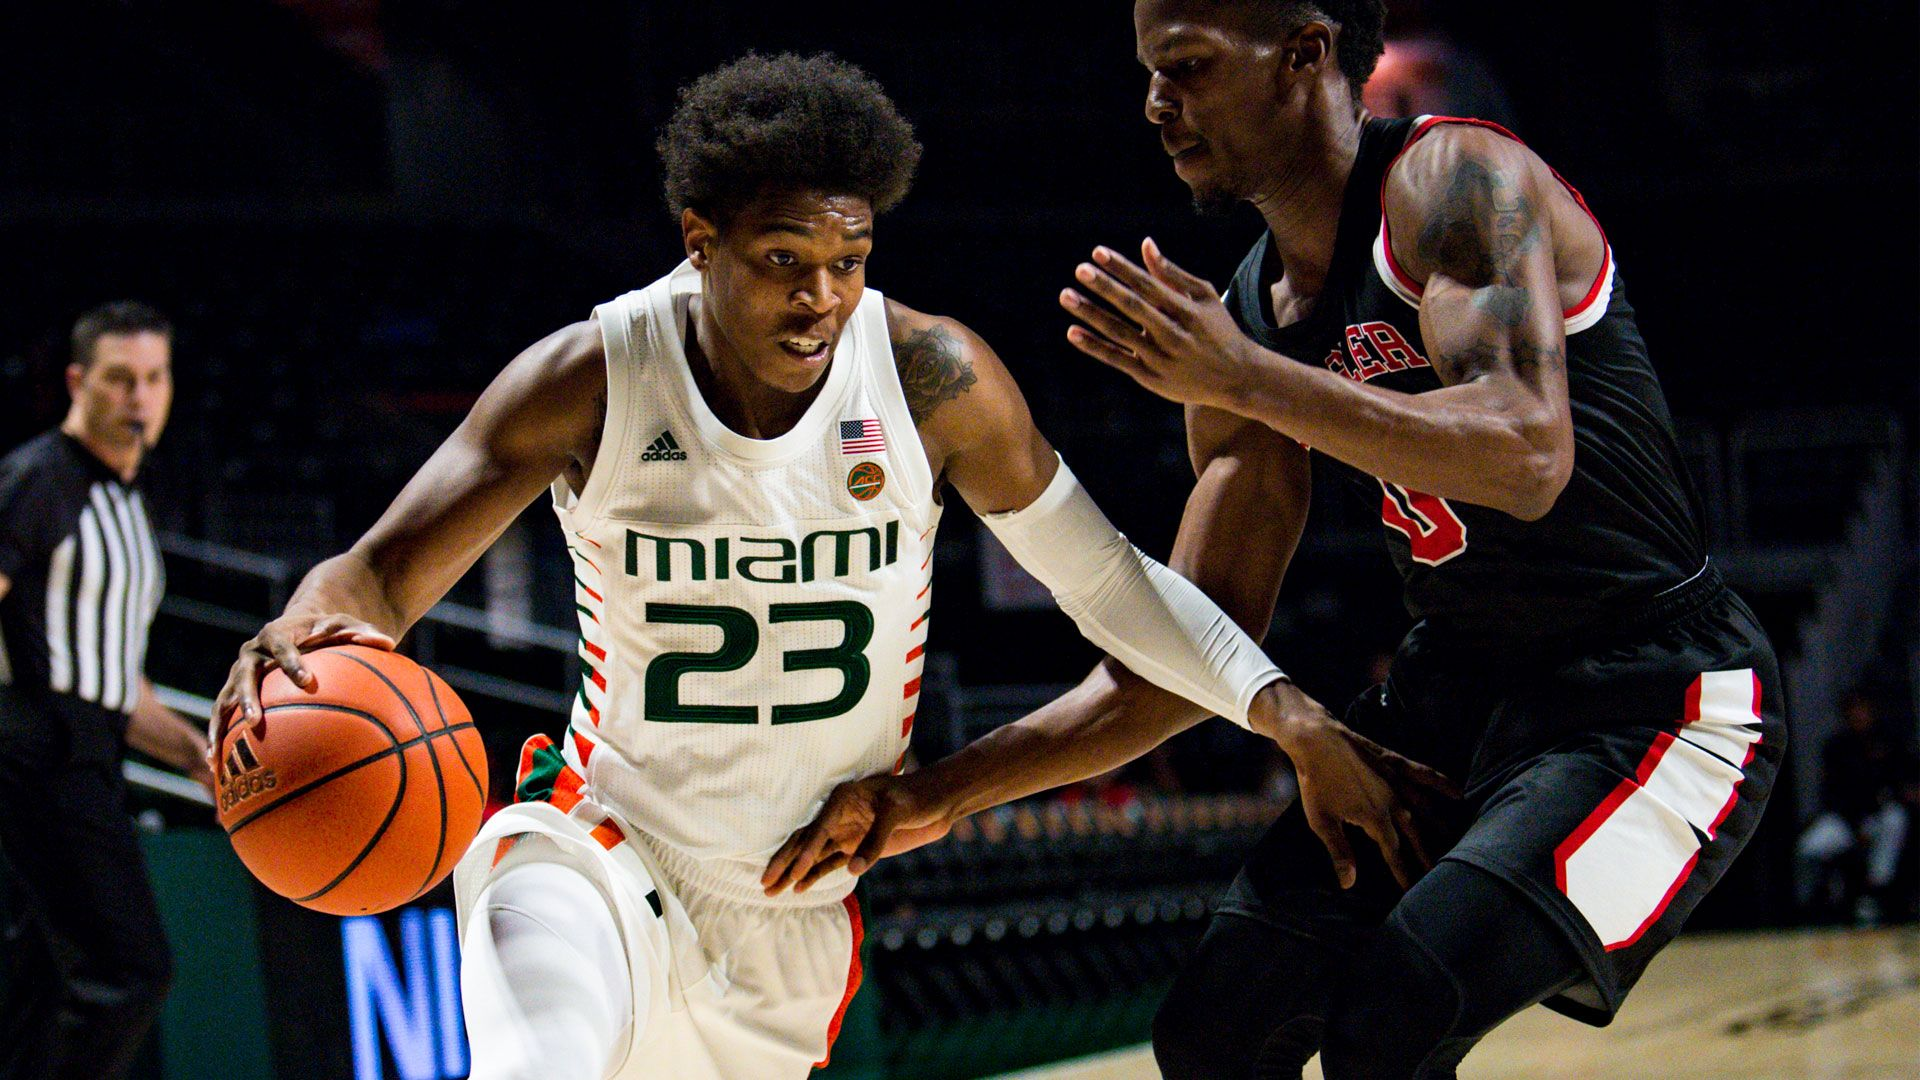 MBB Notches 86-65 Exhibition Win over Flagler